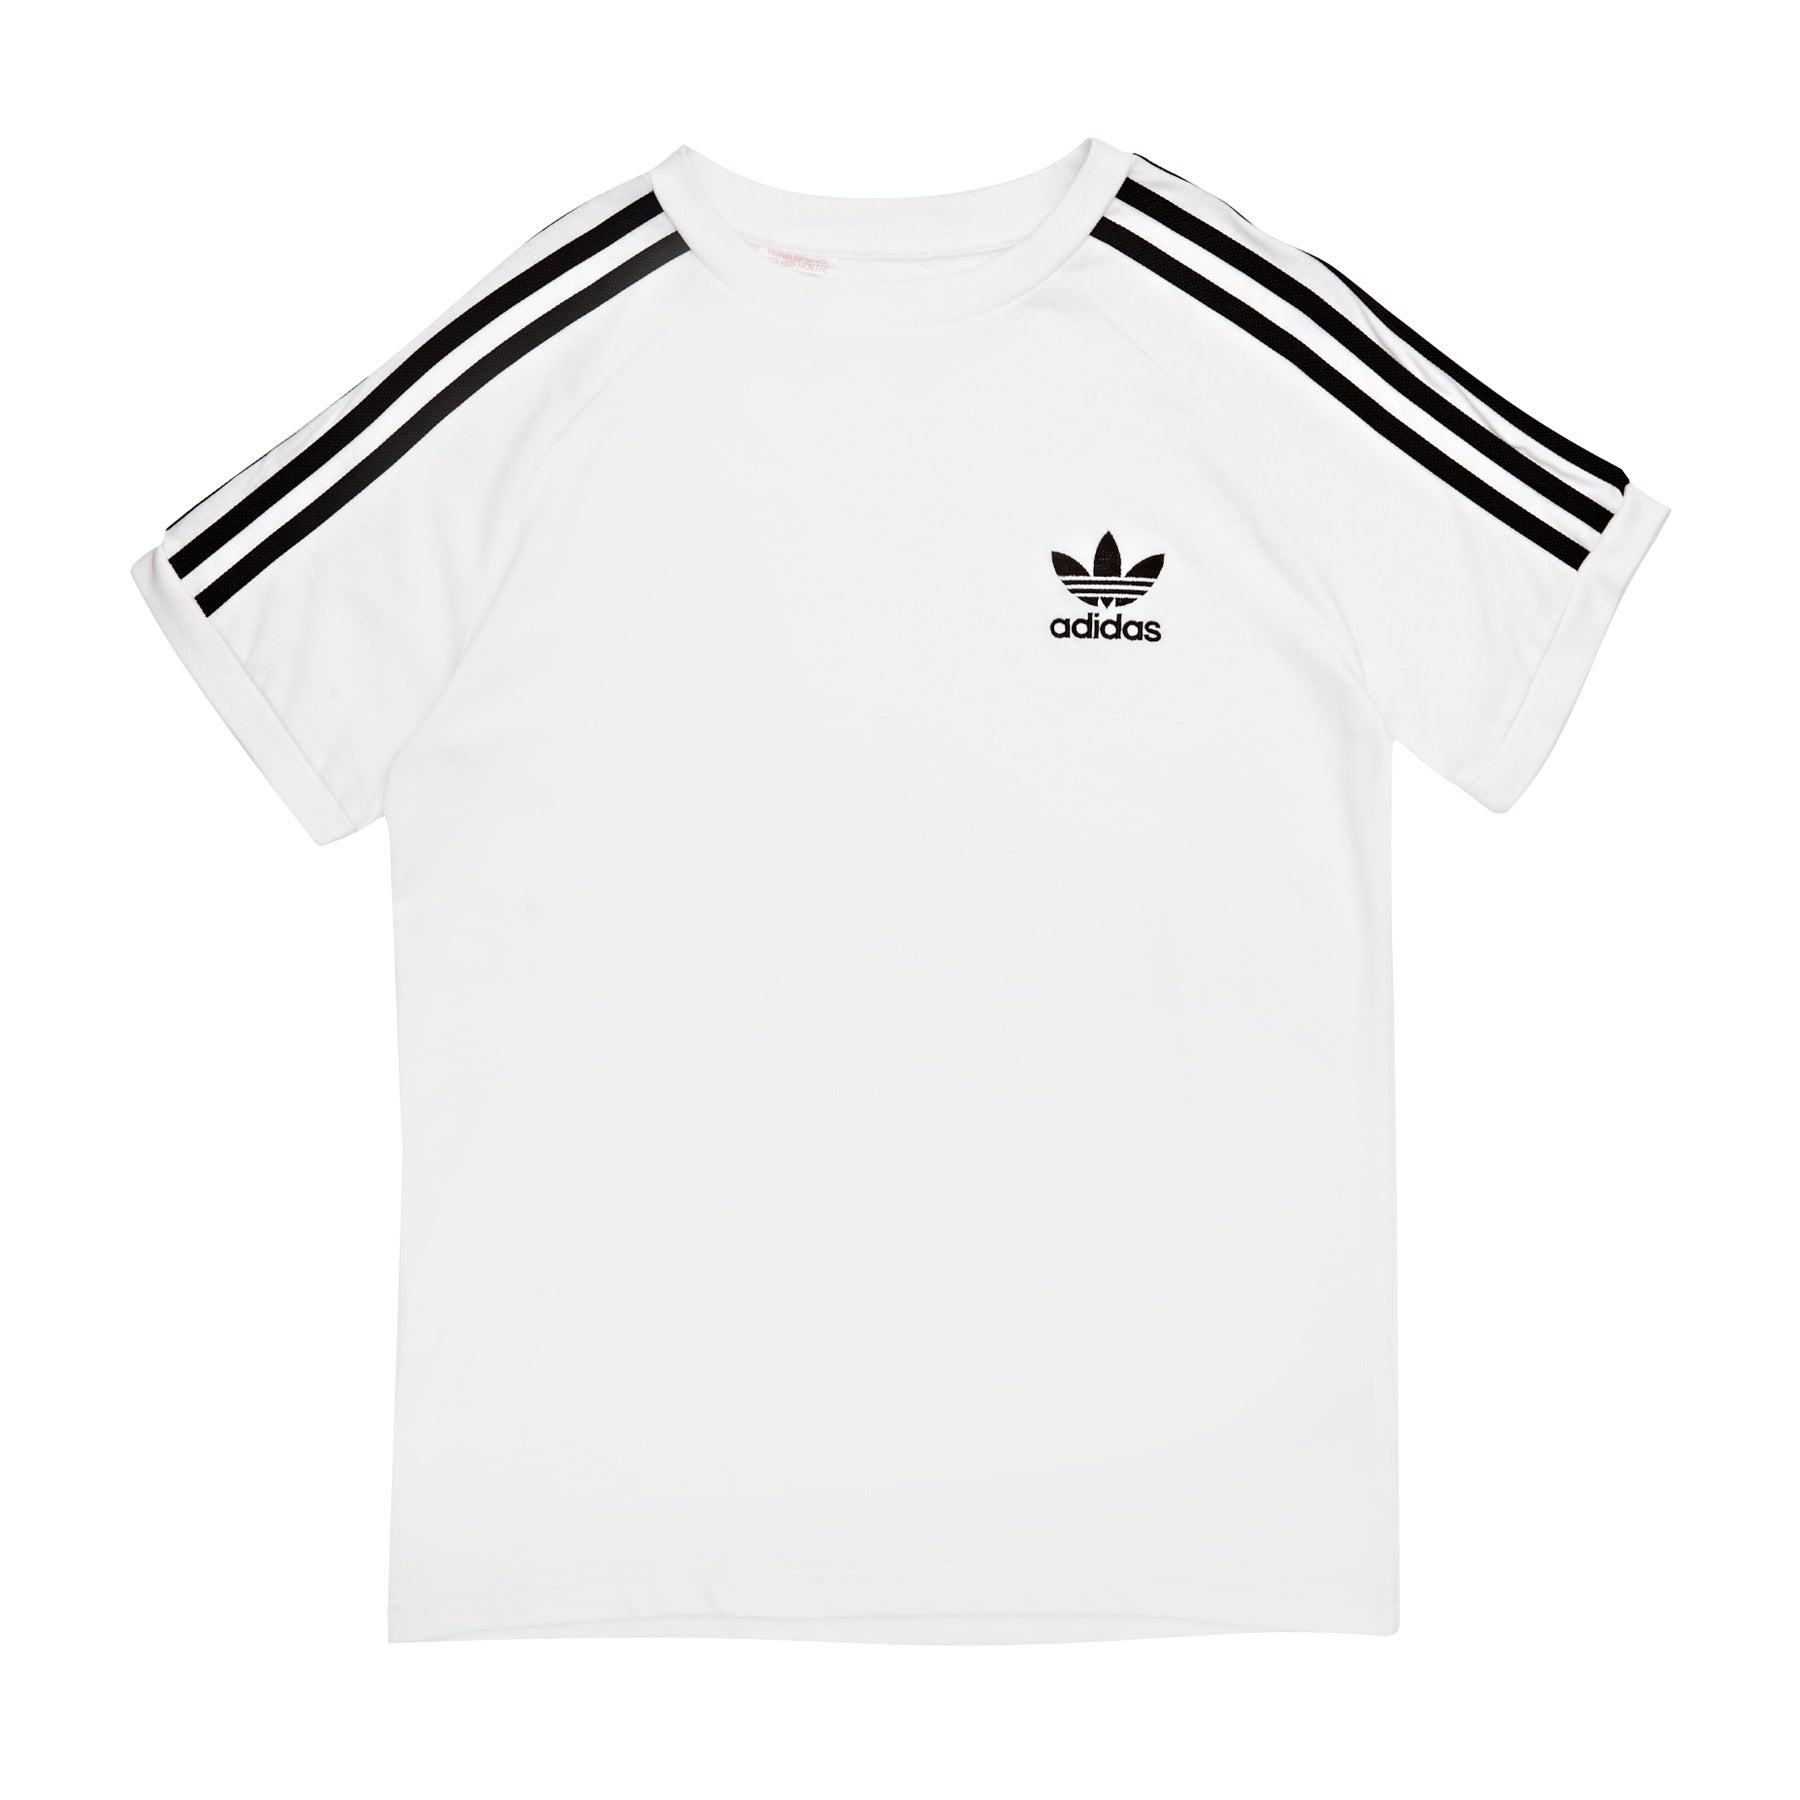 Adidas Originals California Boys Short Sleeve T-Shirt